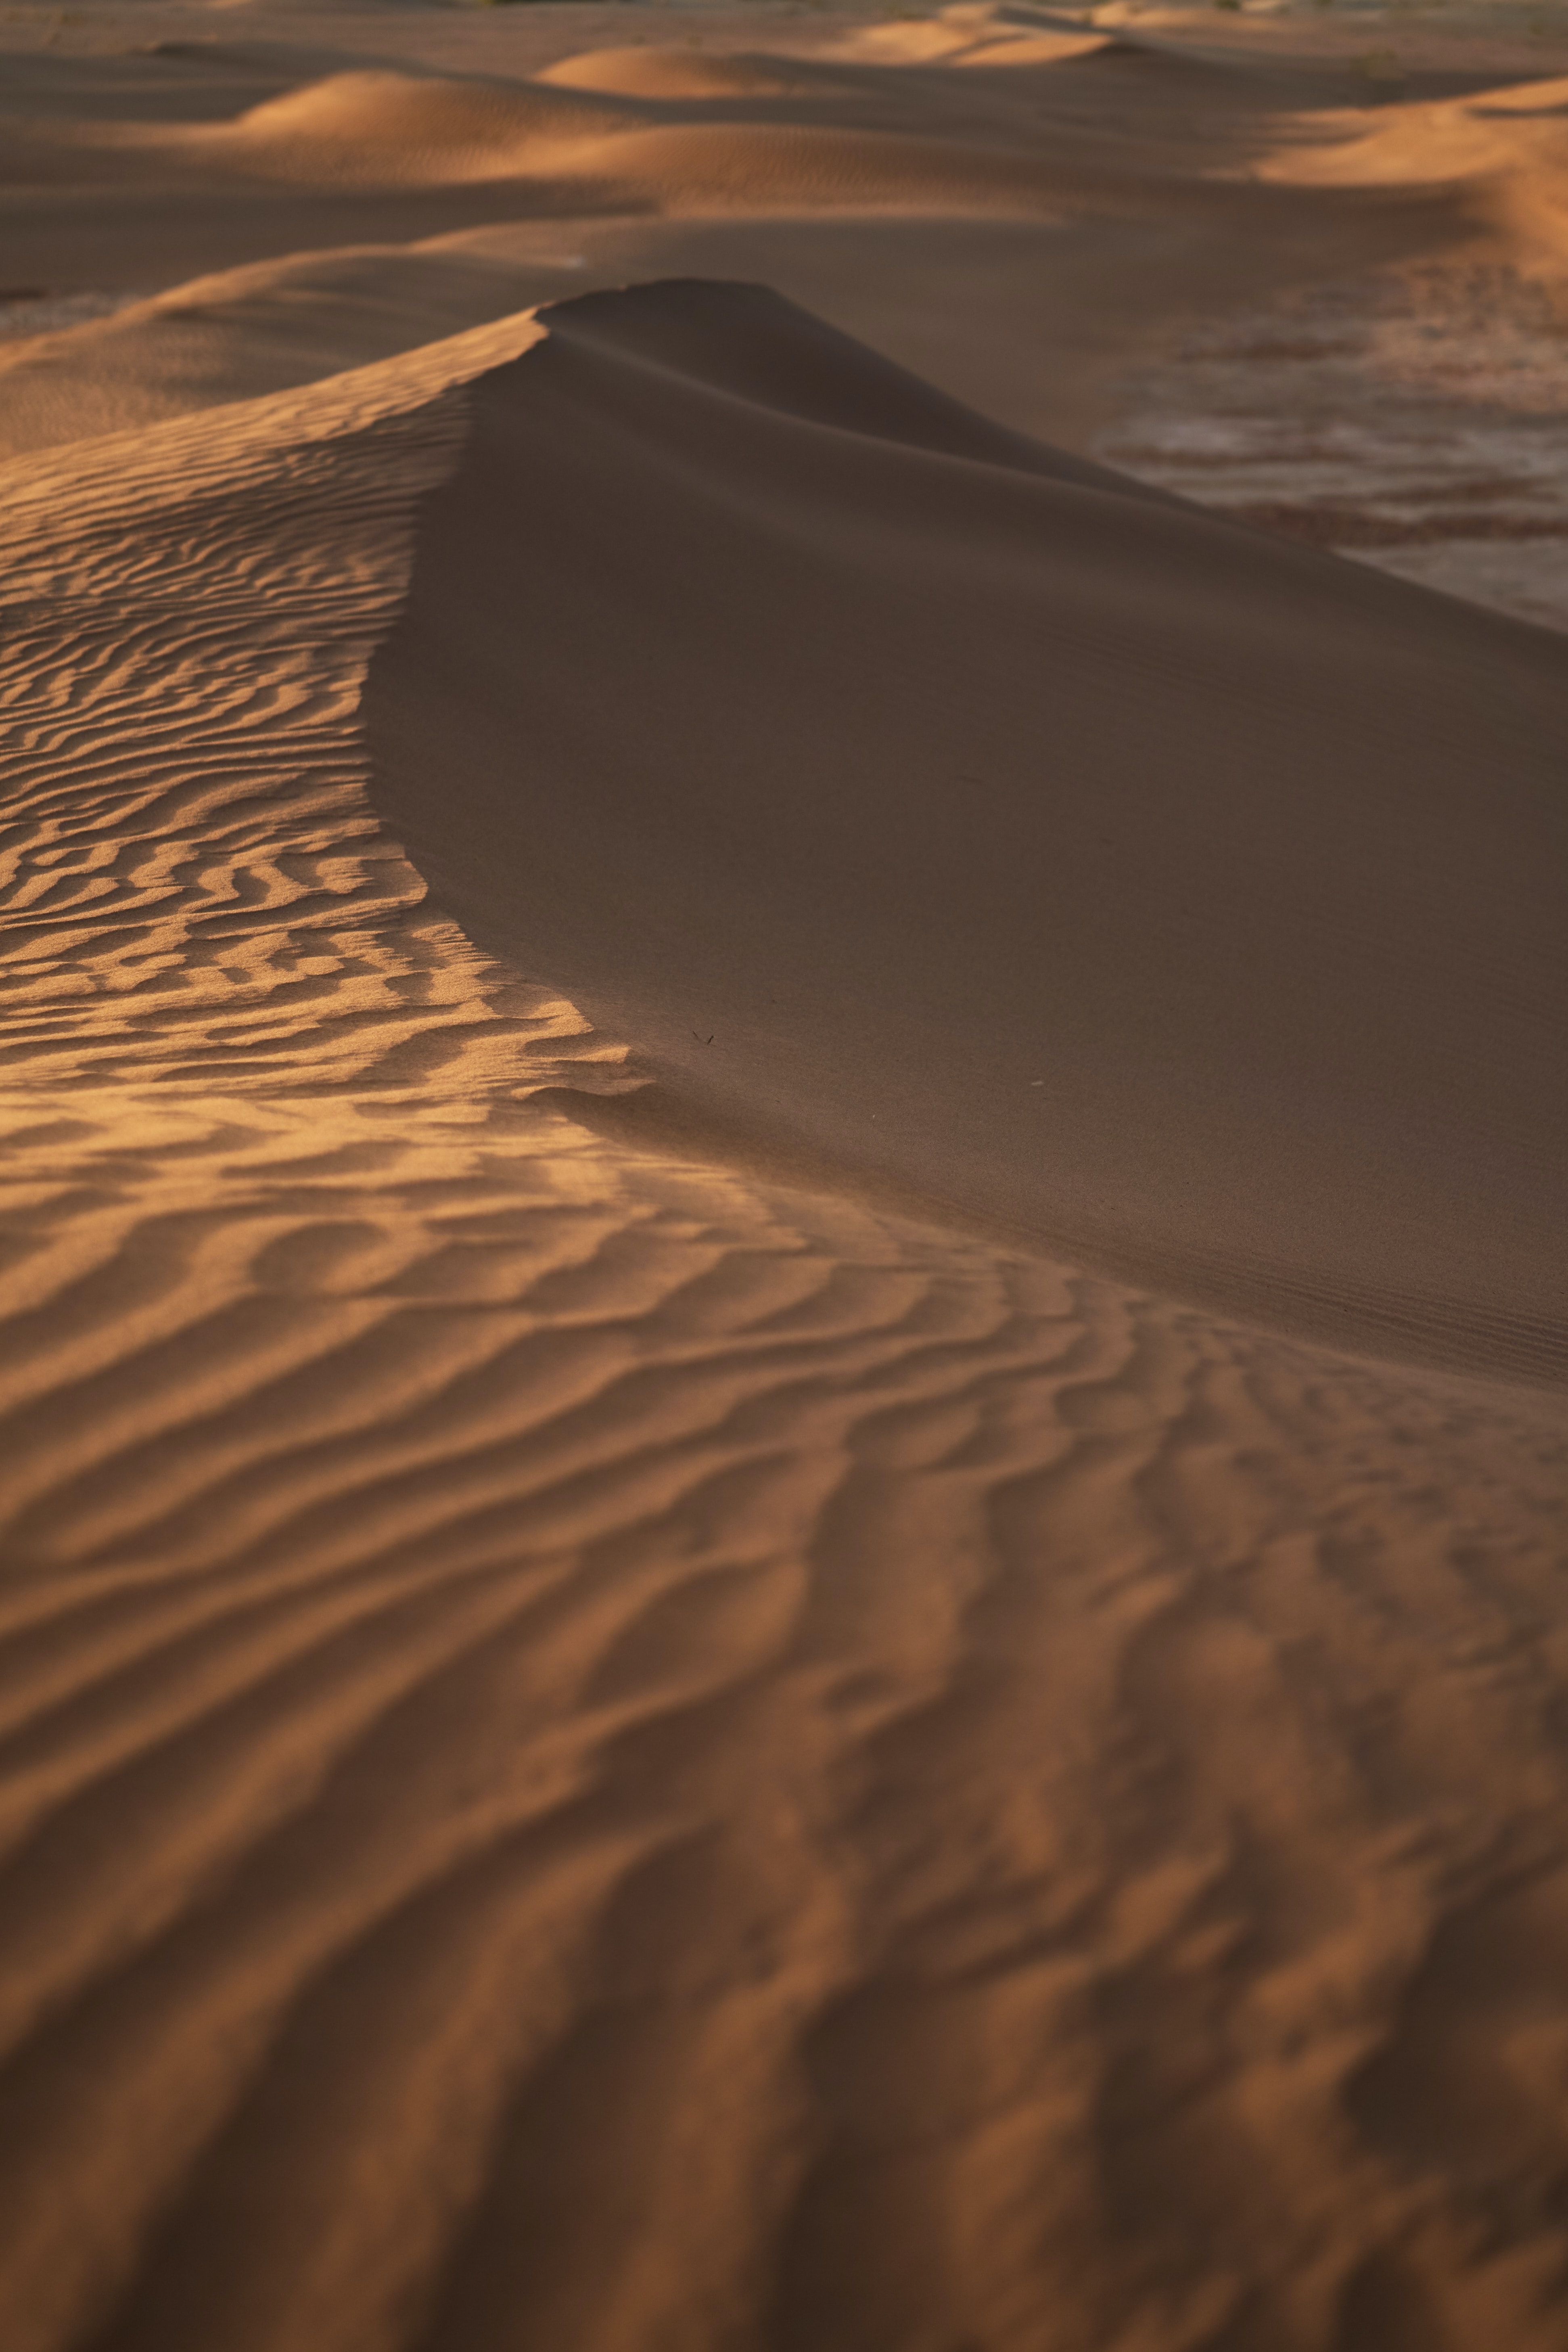 156537 download wallpaper Nature, Sand, Dunes, Links, Wavy, Desert screensavers and pictures for free